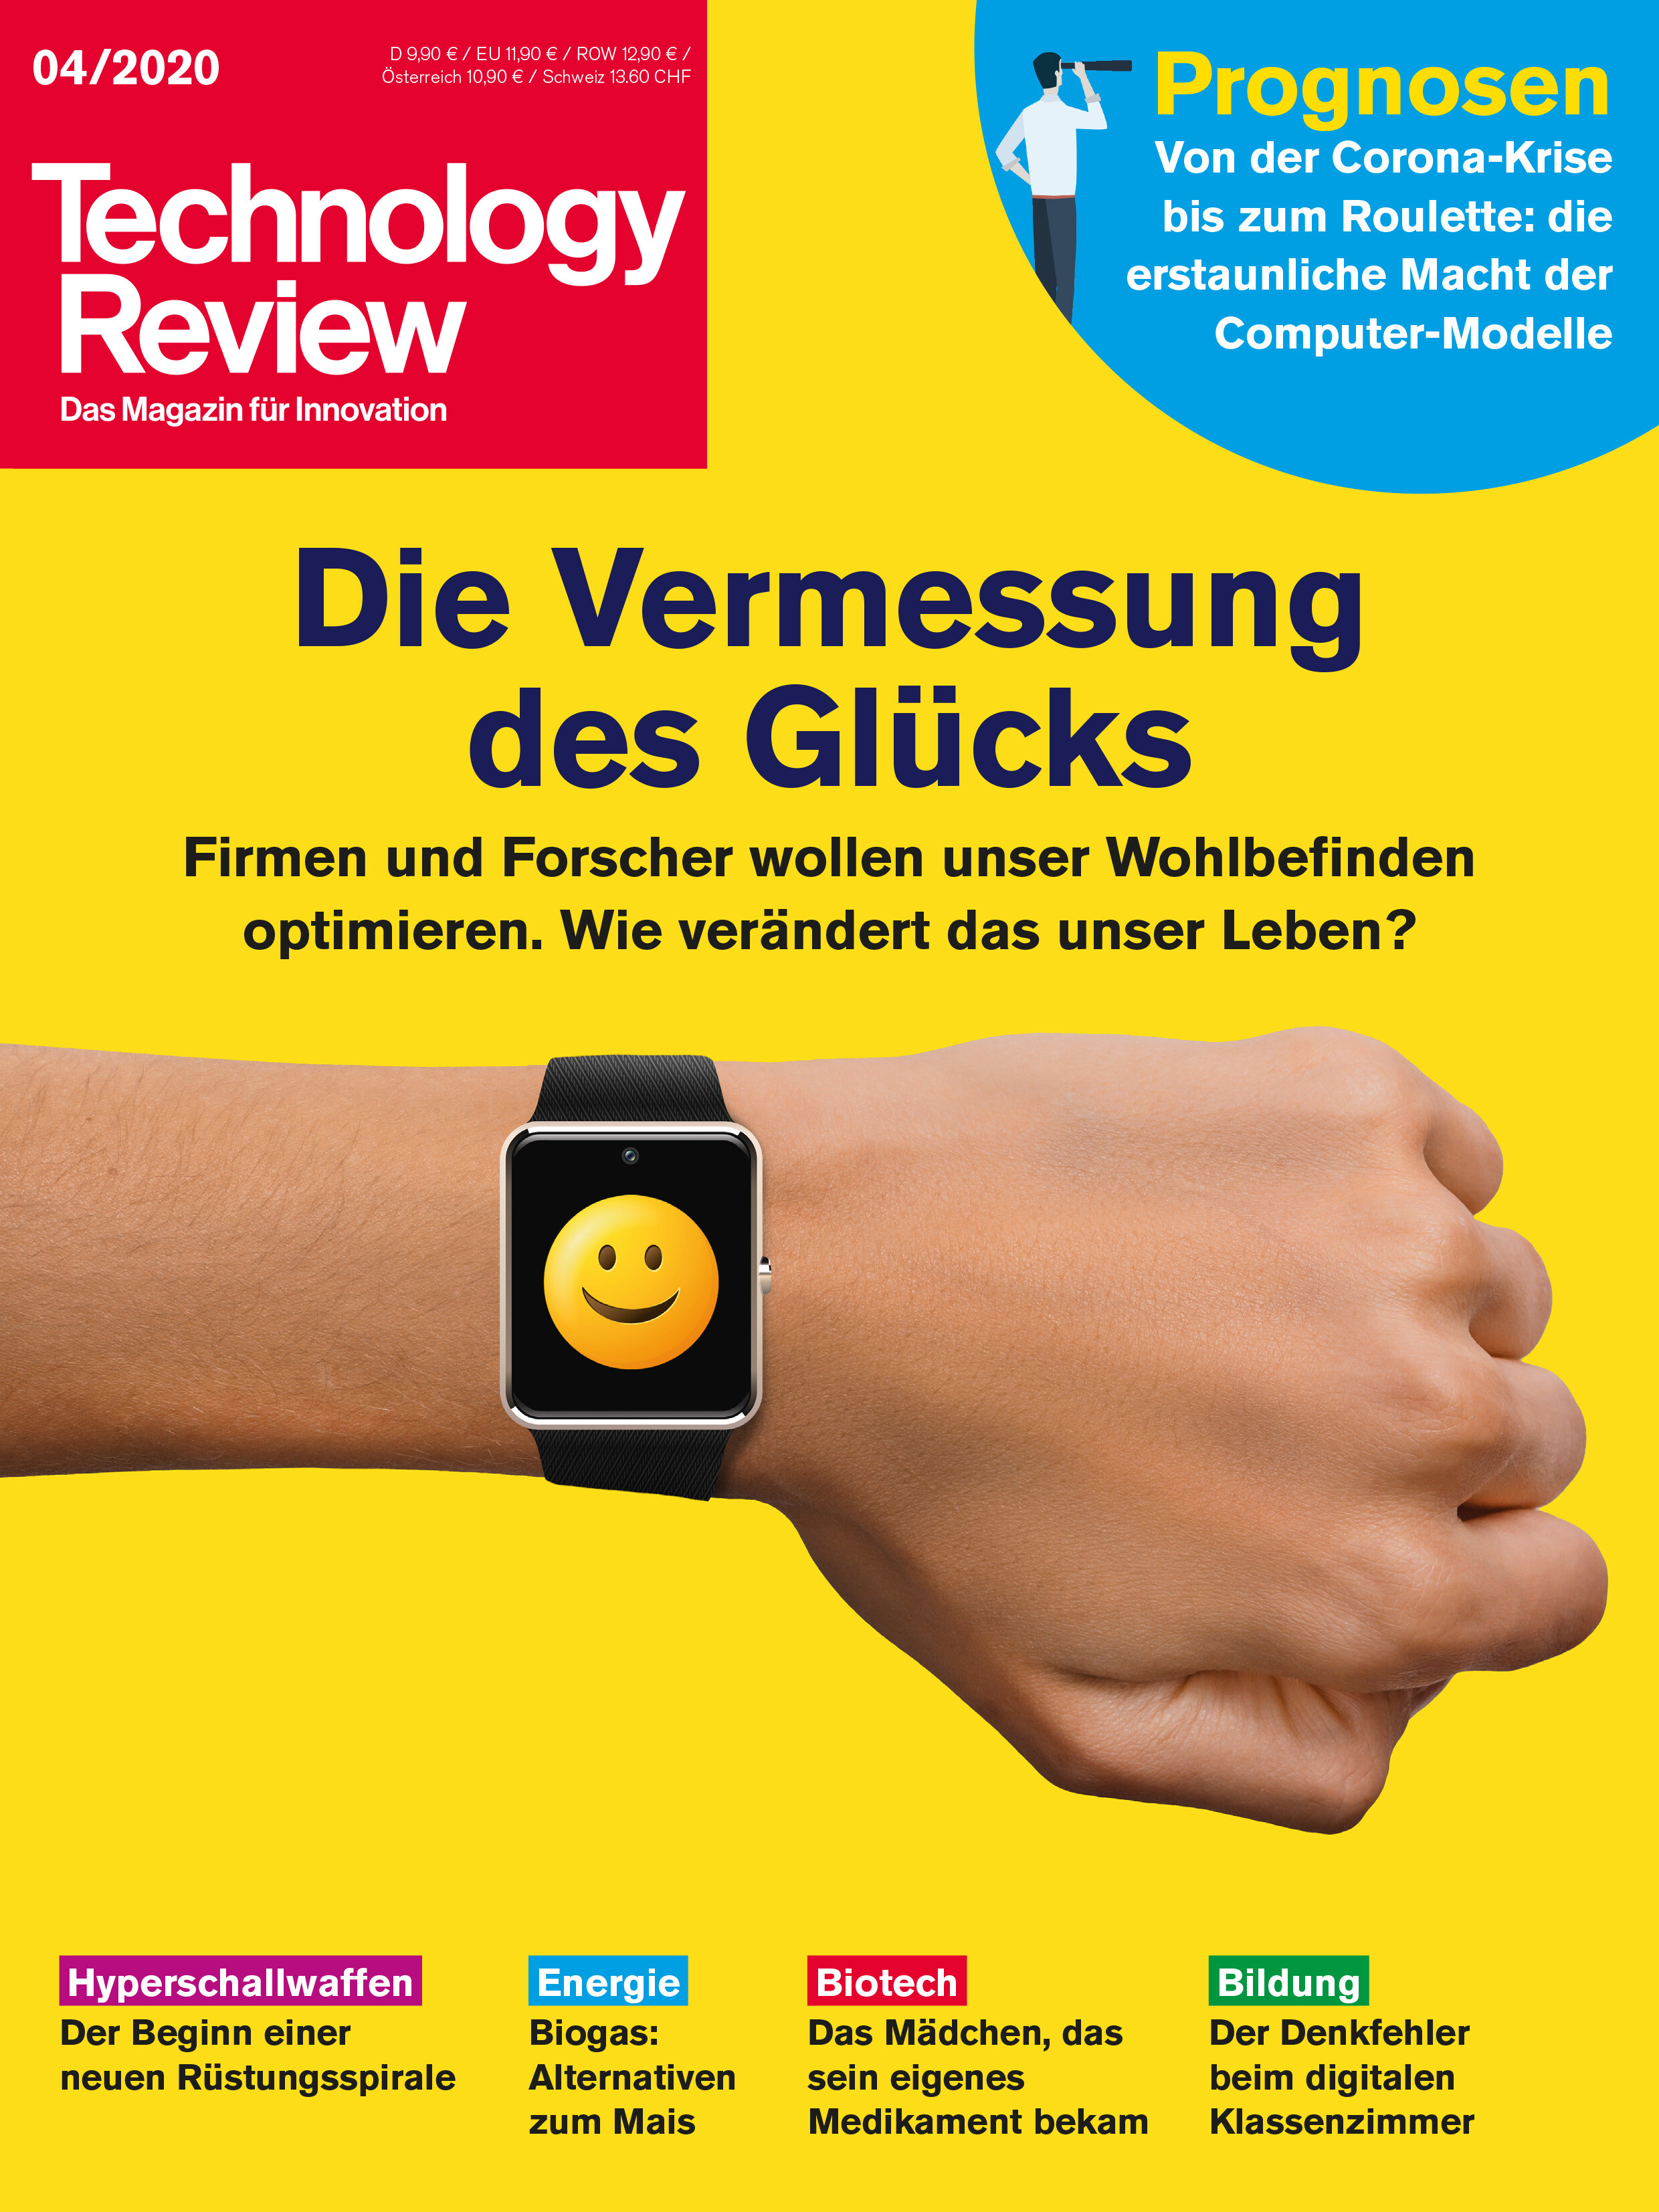 Technology Review 04/2020